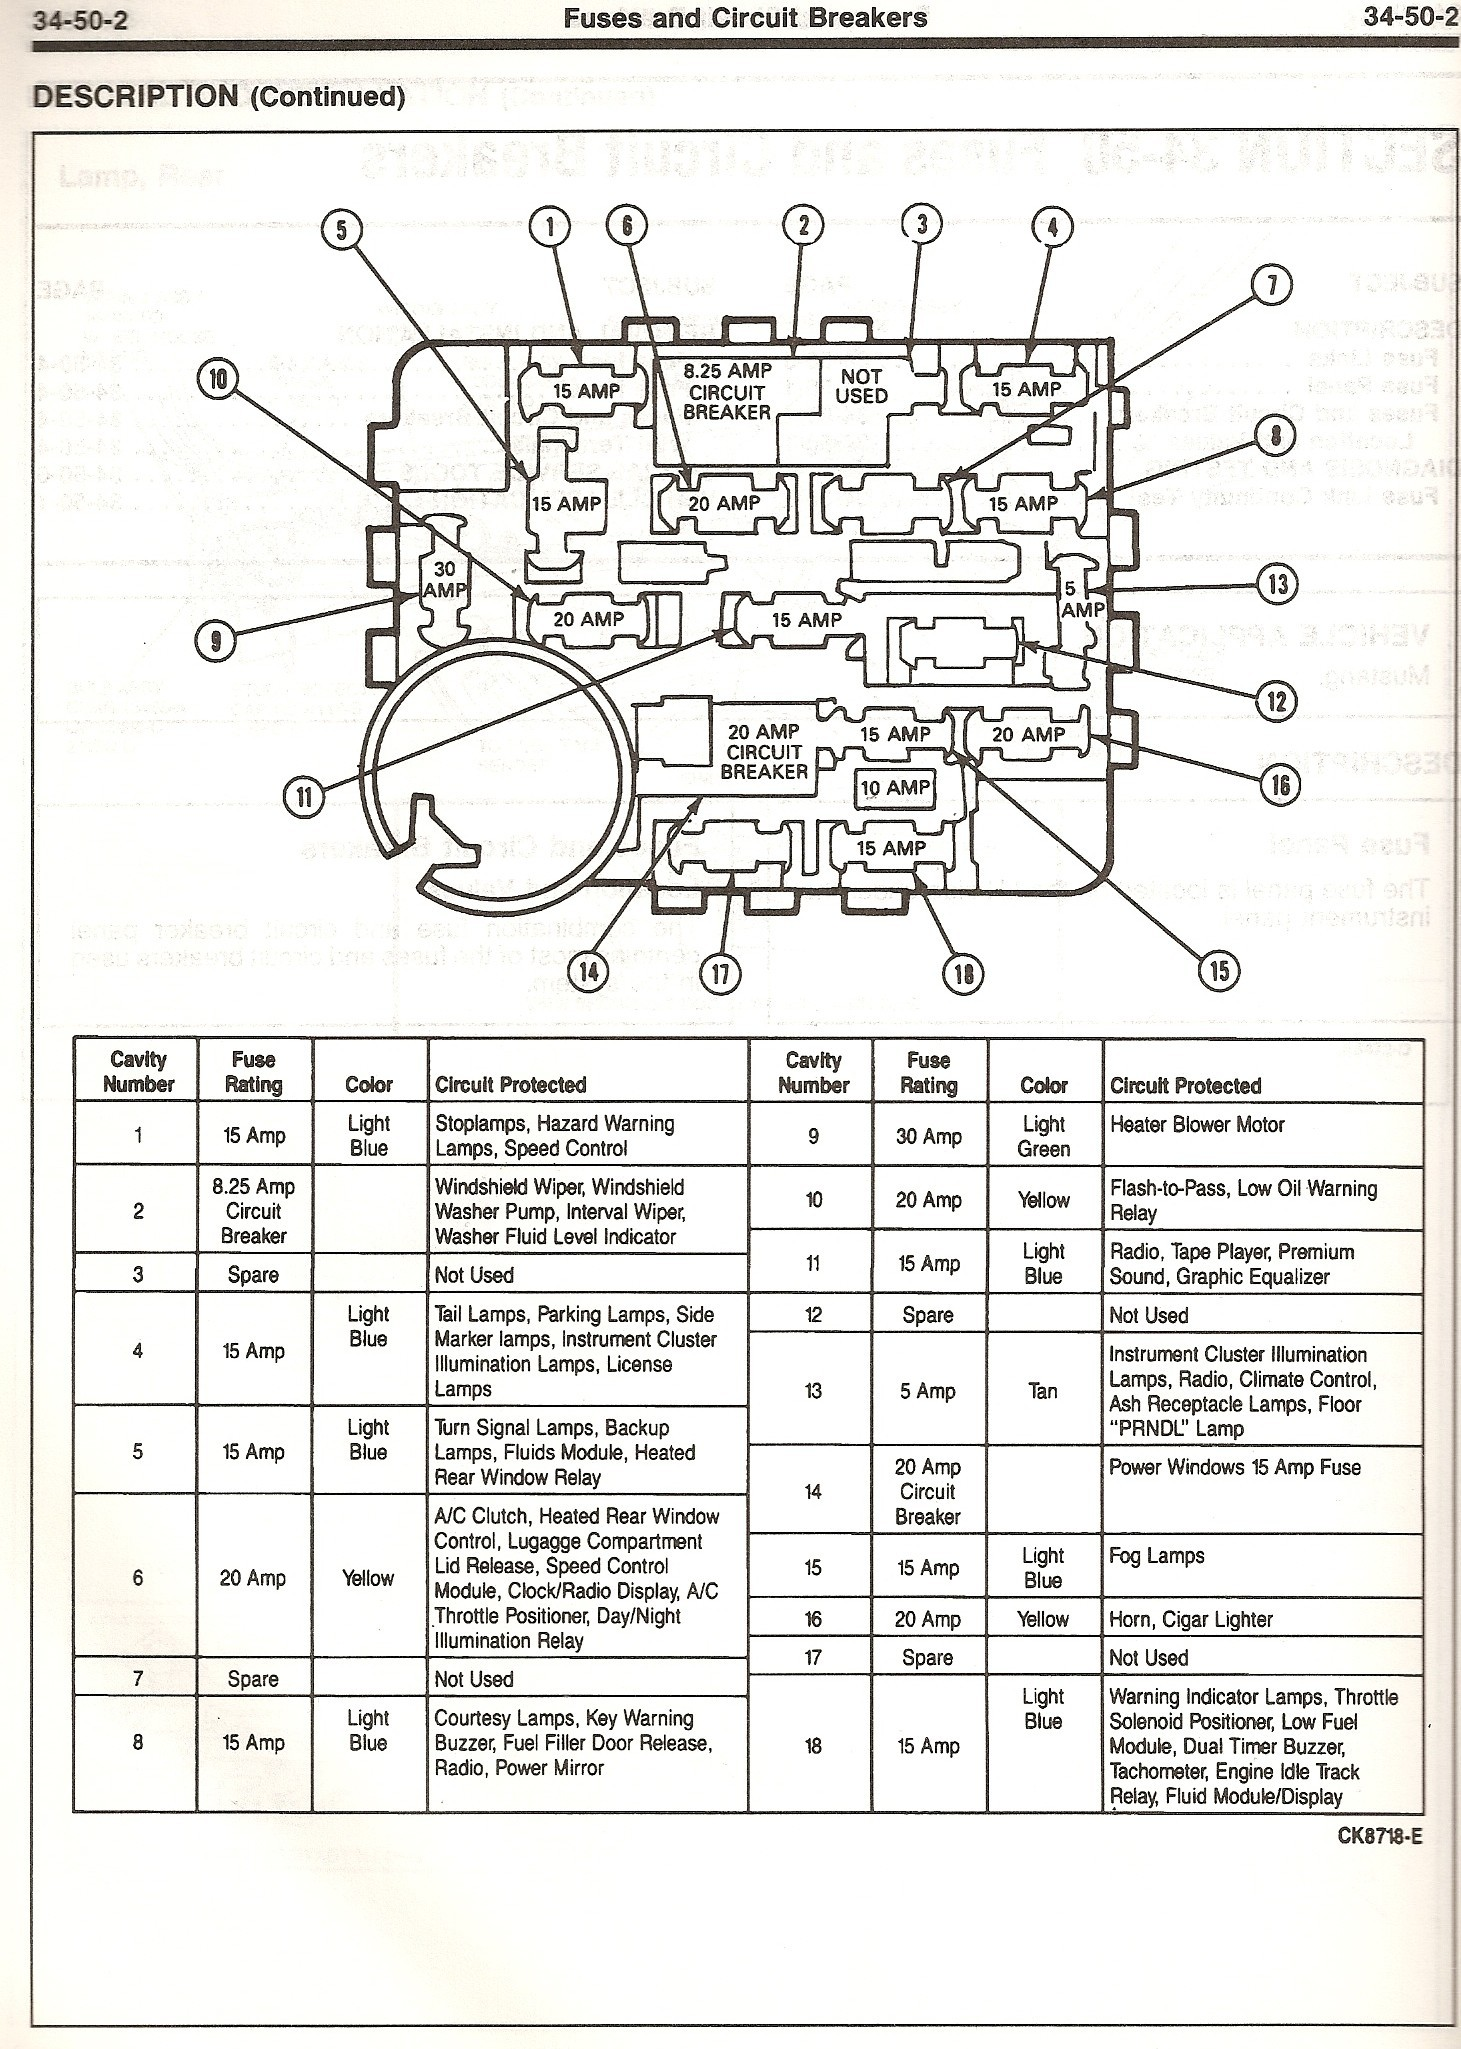 69 Camaro Fuse Box Diagram